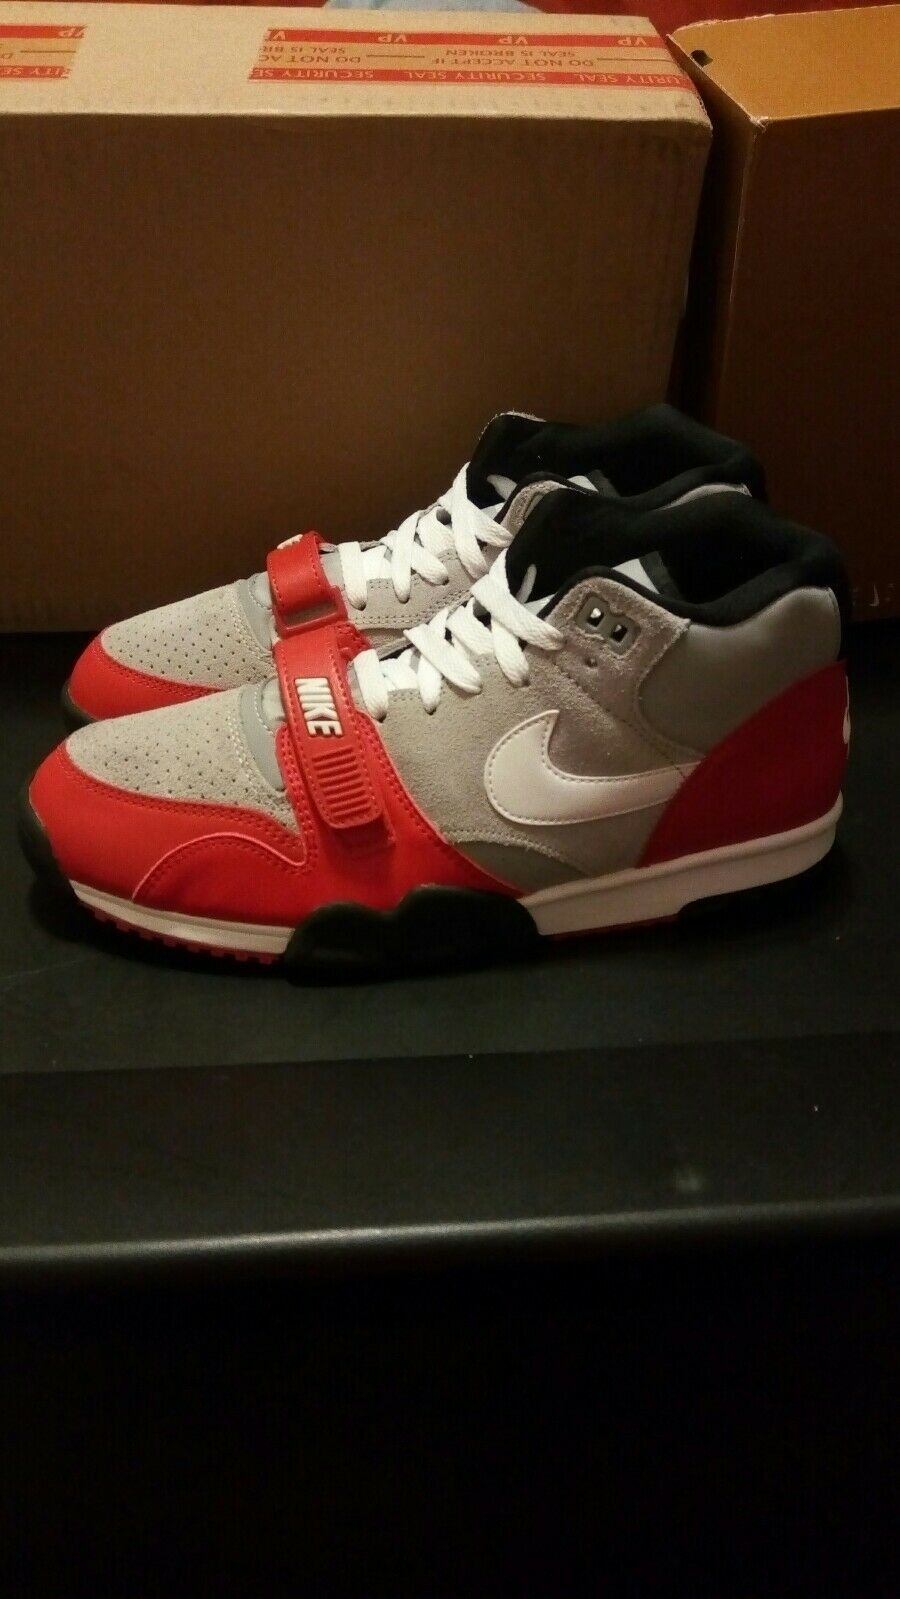 Nike Air Trainer 1 Bo JacksonRed/Grey/Black/White